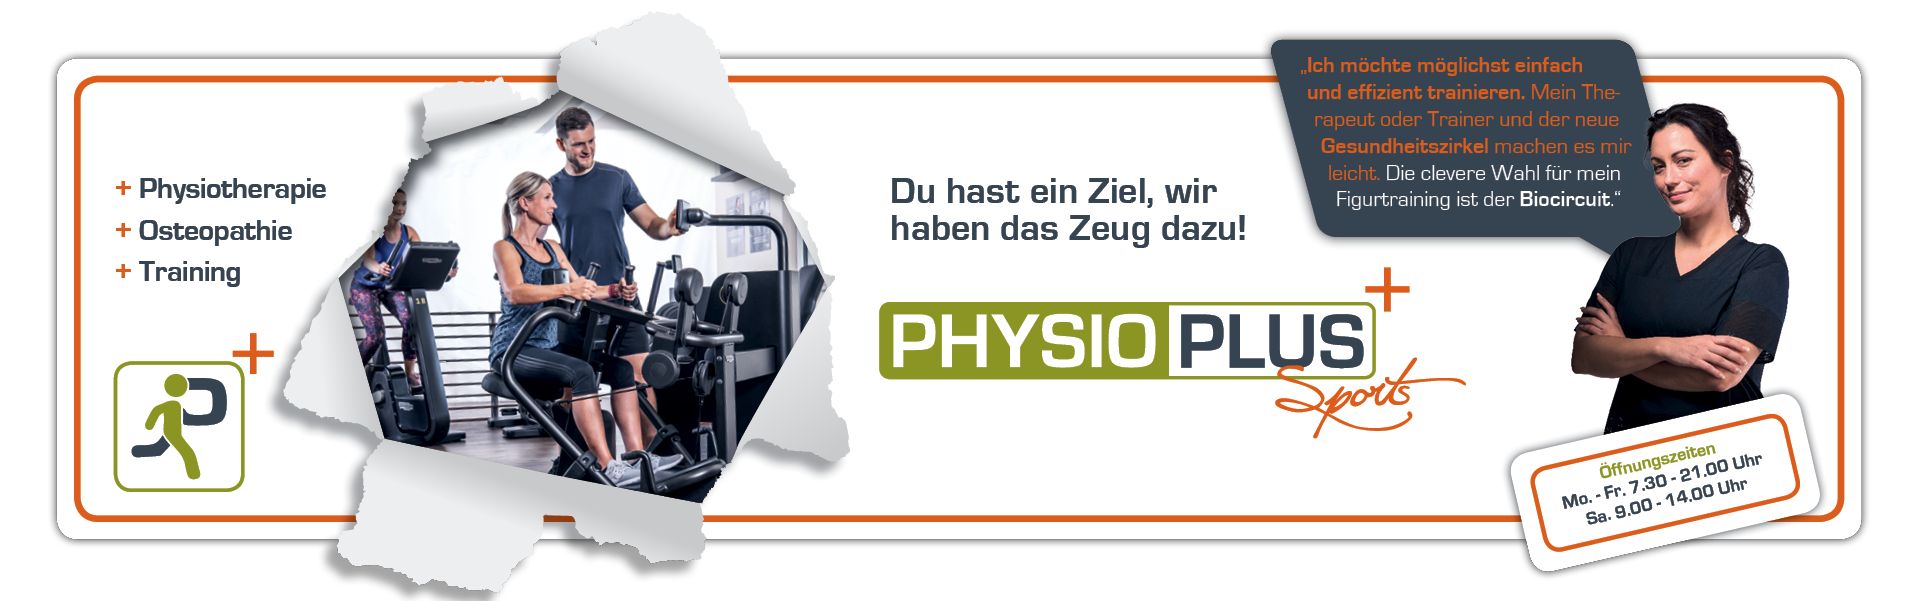 PhysioPlus Sports